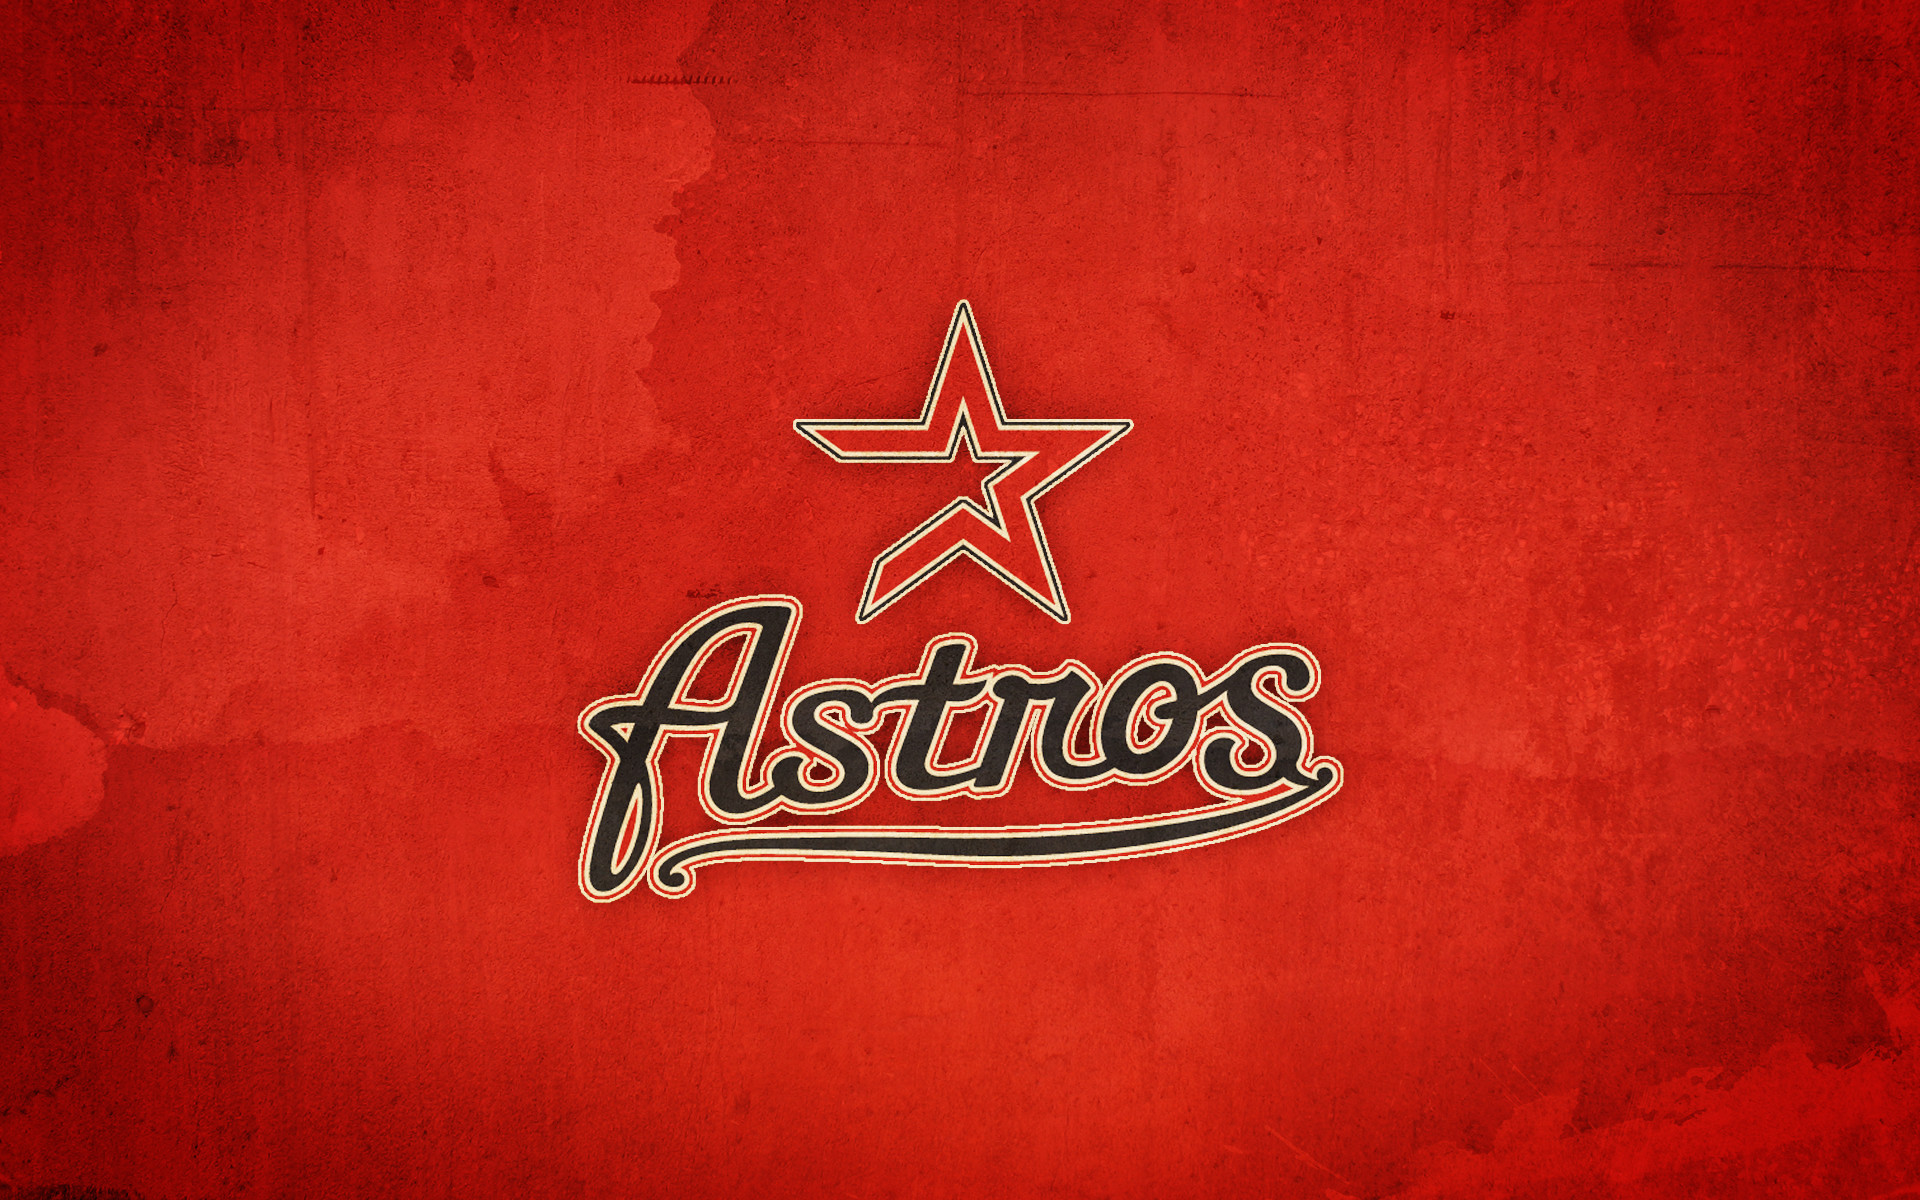 1920x1200 Astros Wallpaper